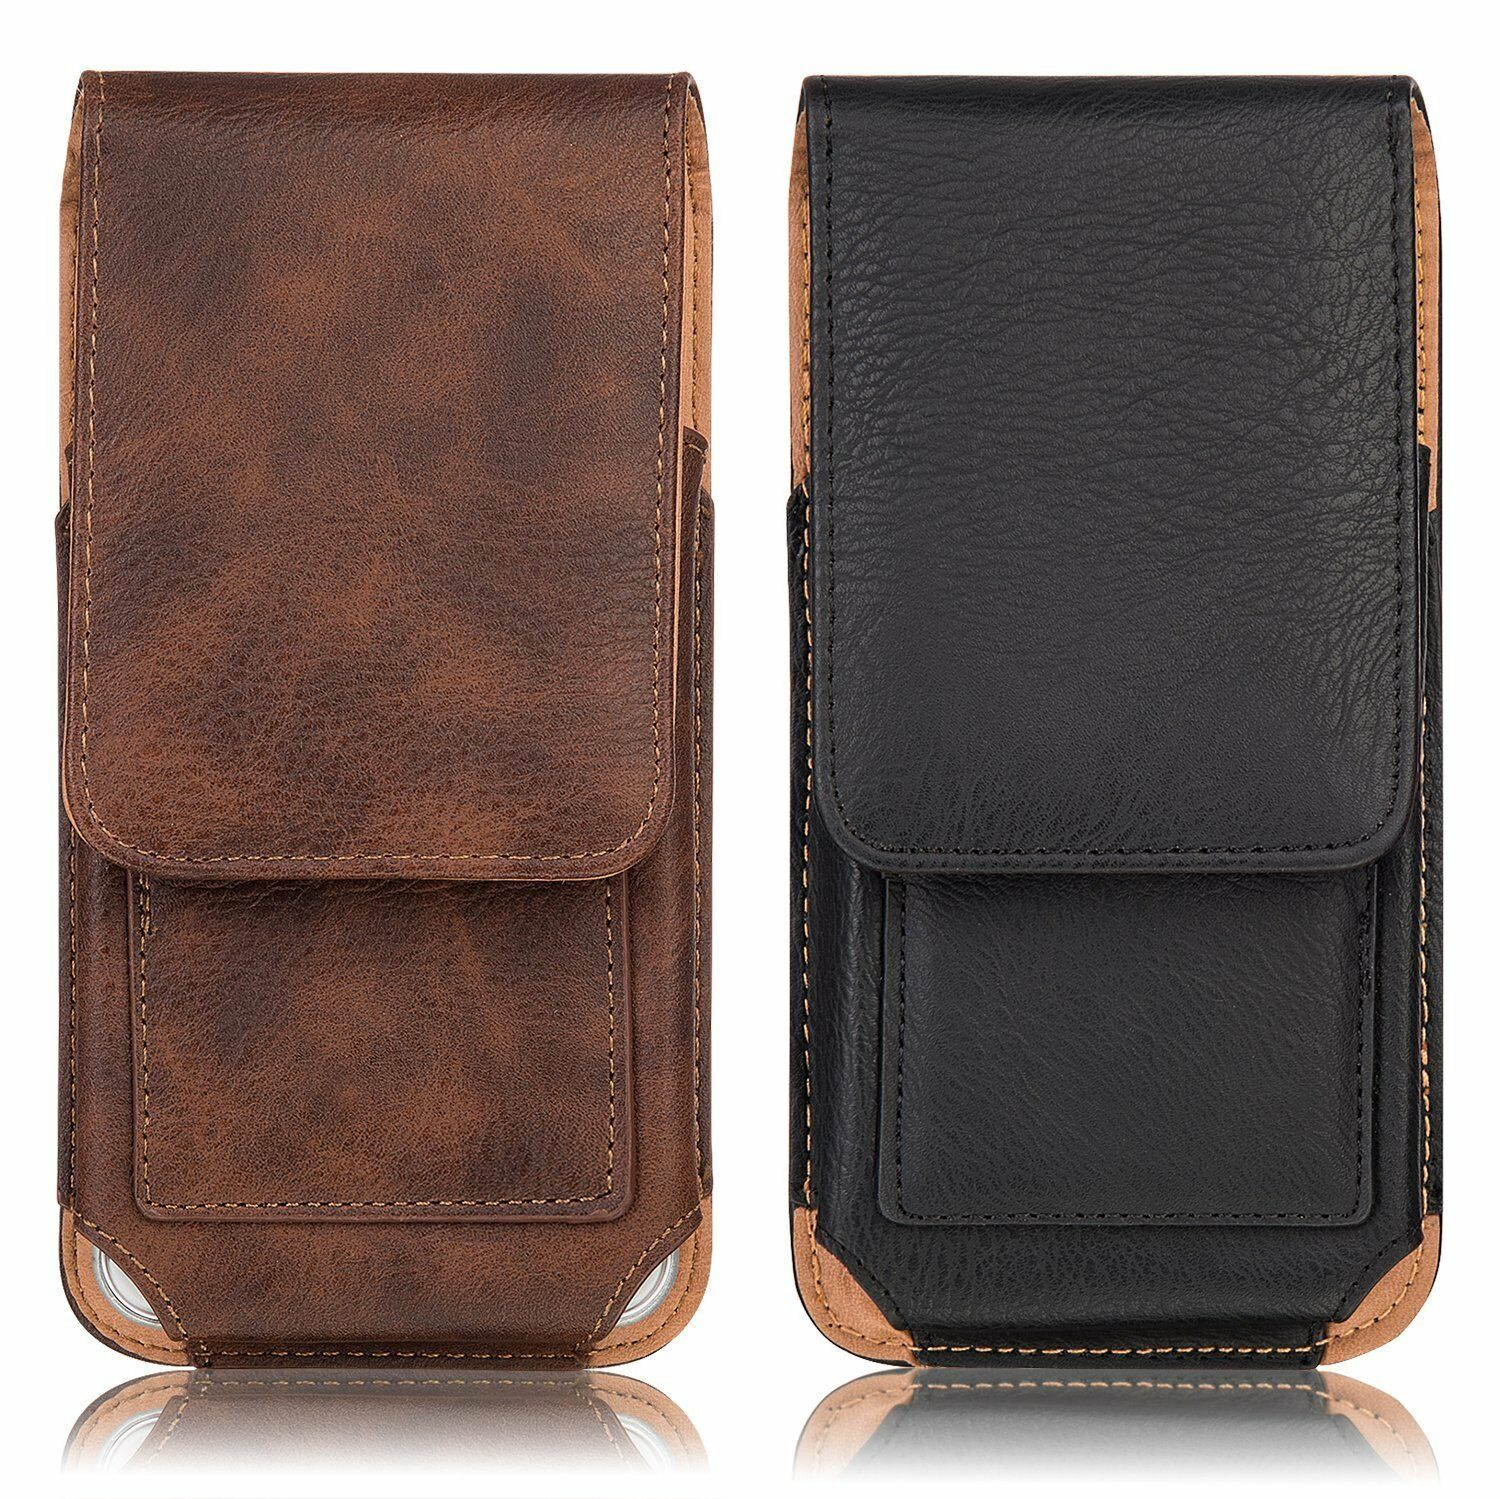 Vertical Leather Holster Belt Clip Pouch Carrying Case Cover